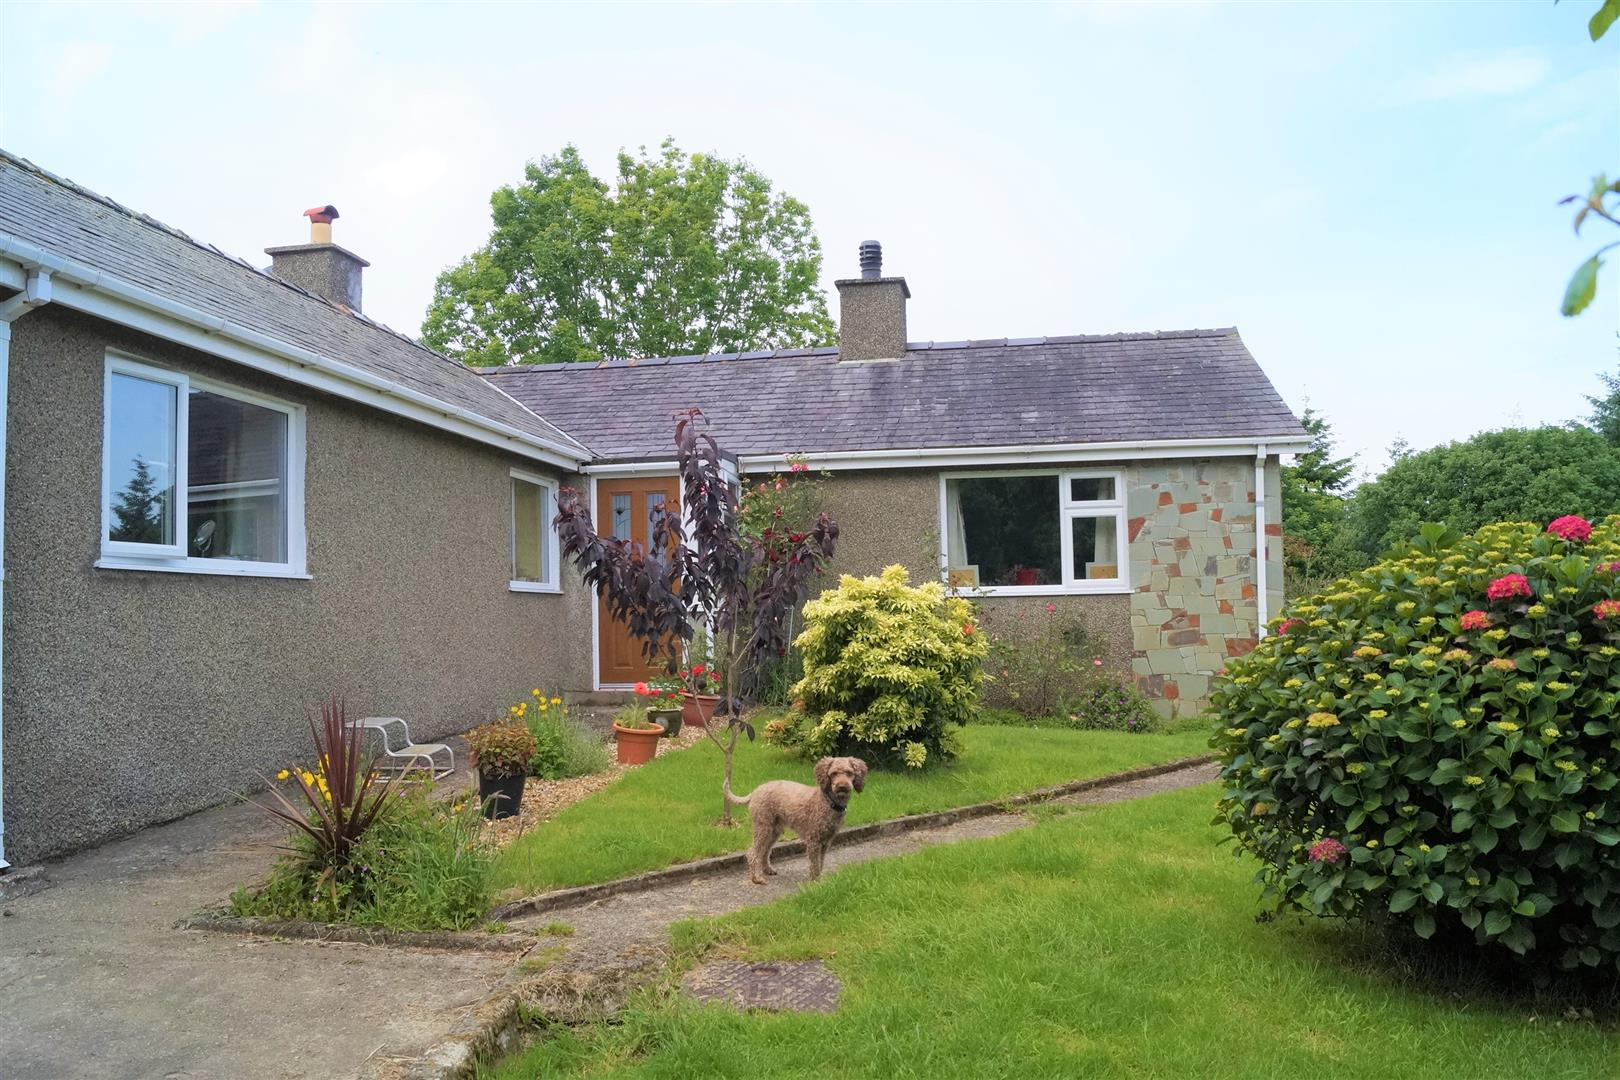 Boduan, Pwllheli - £275,000/Reduced to